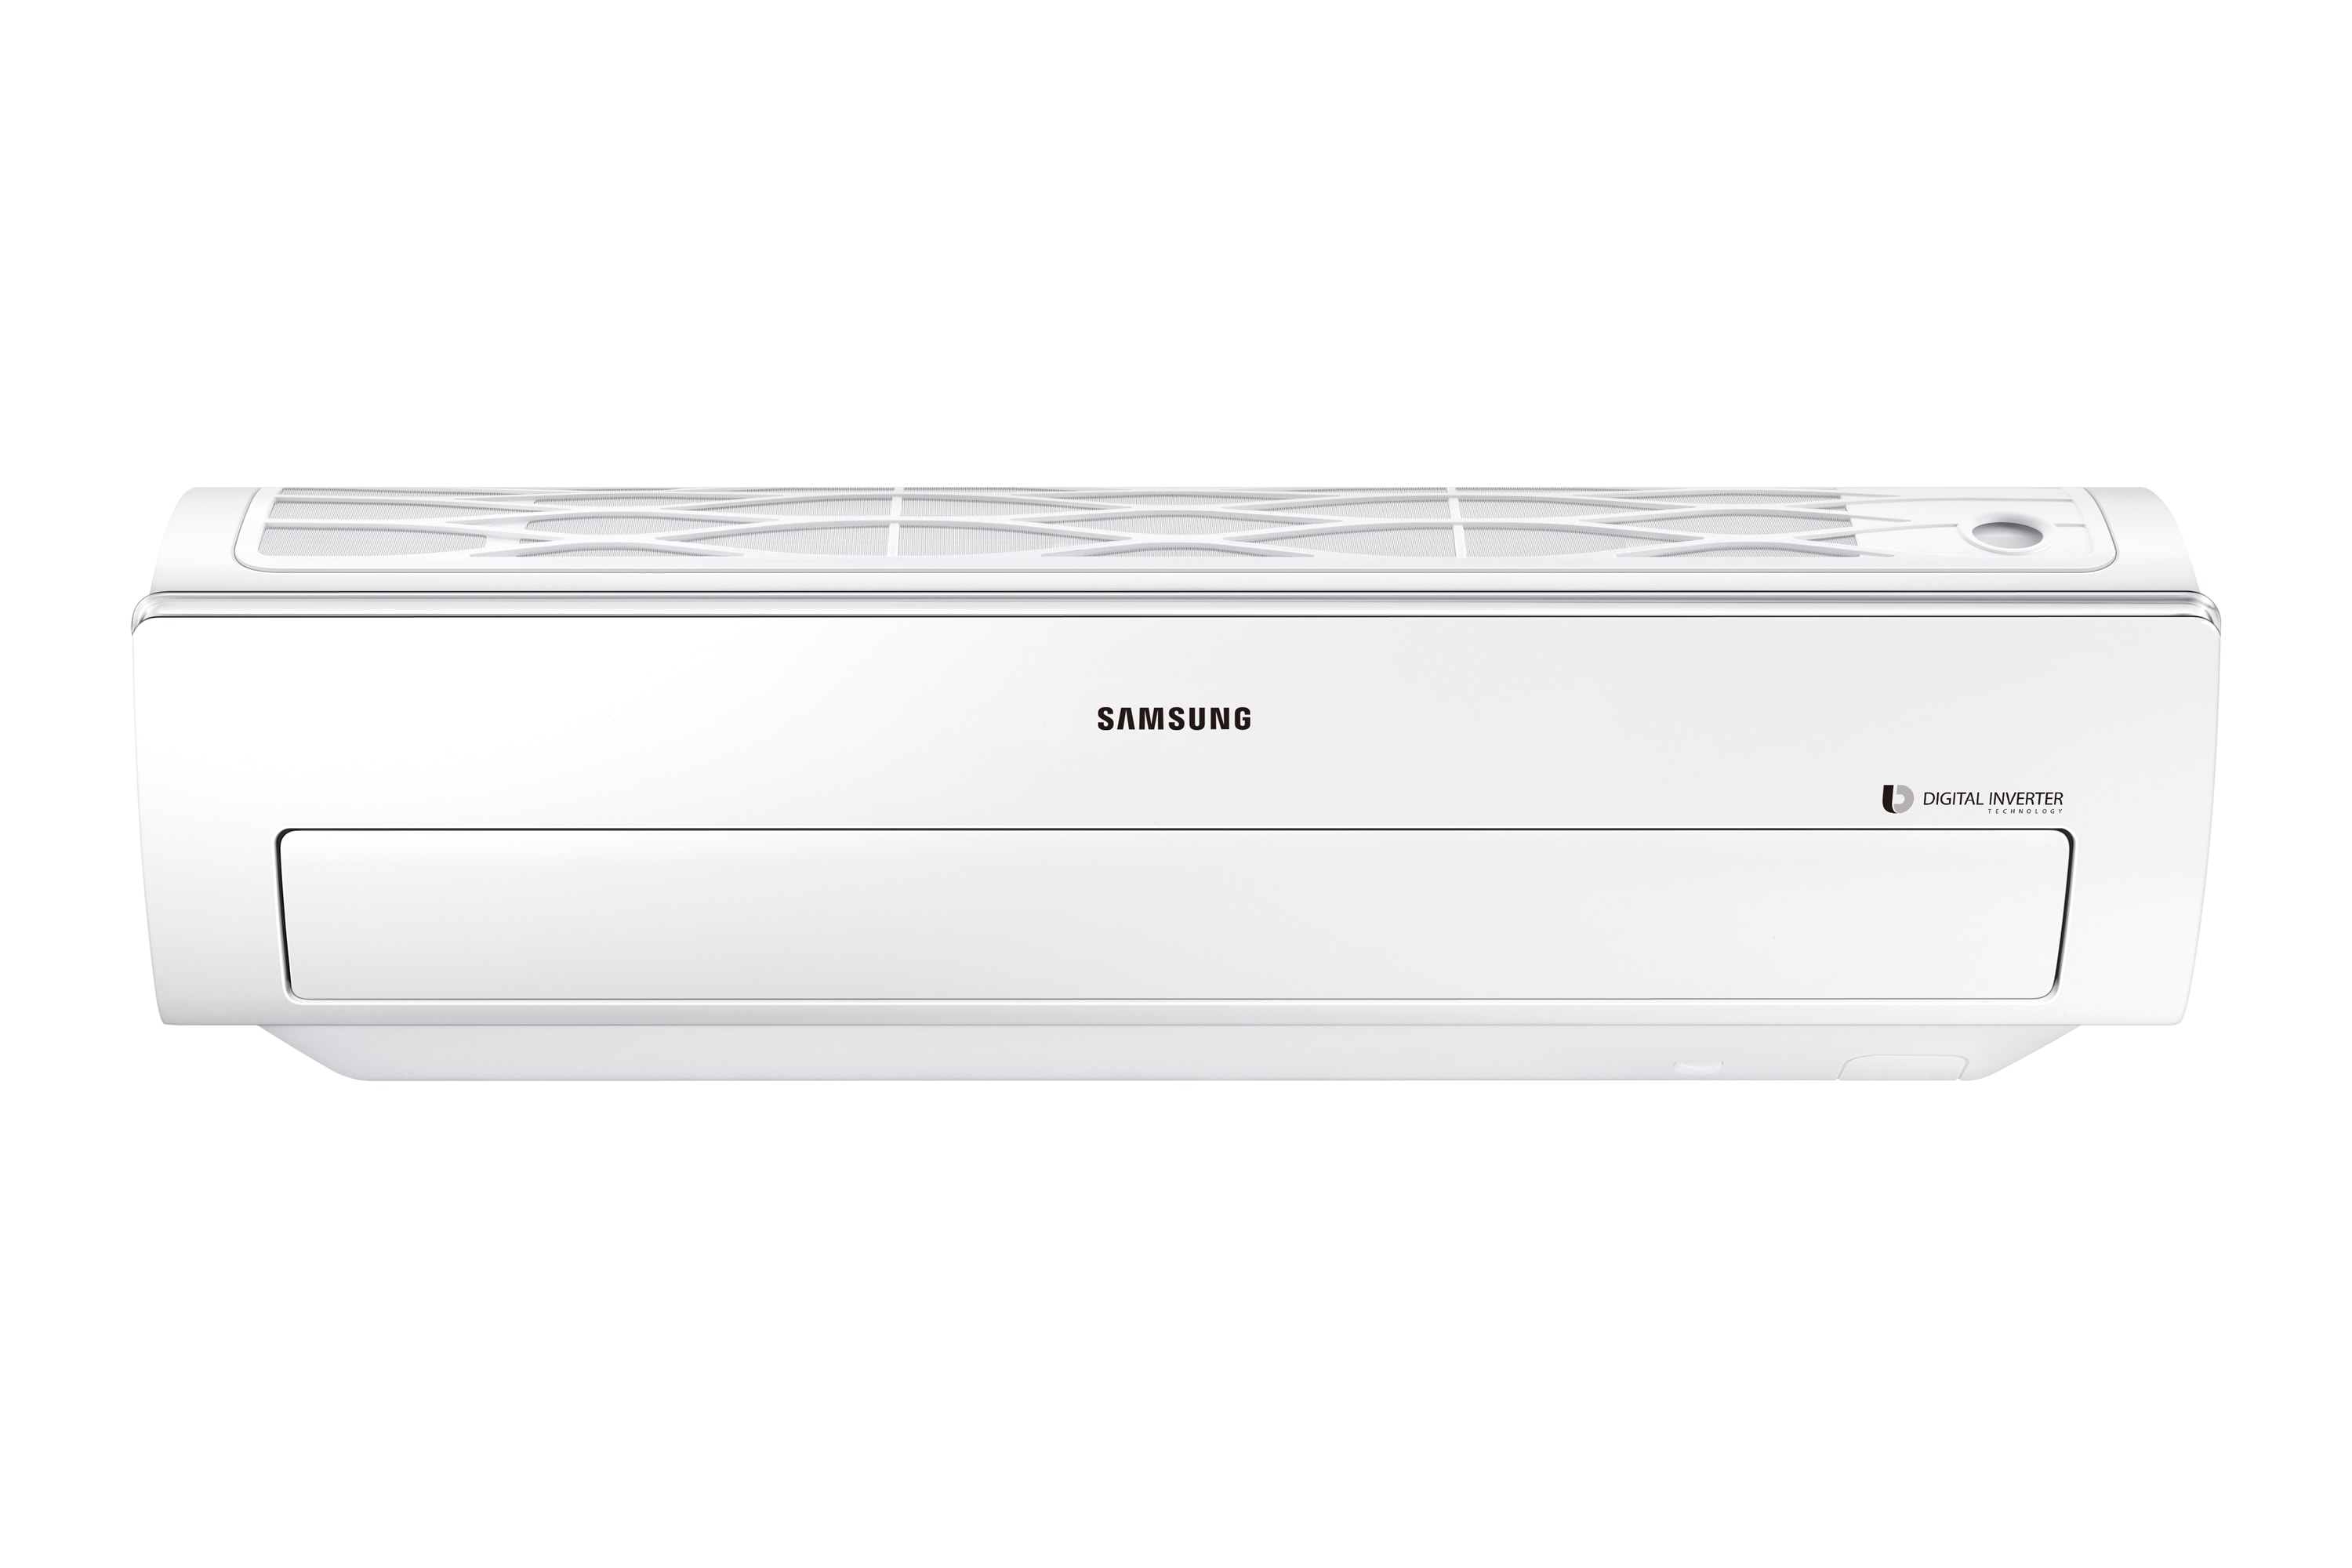 AR5500 Wall-mount AC with Faster Cooling, 18000 BTU/h